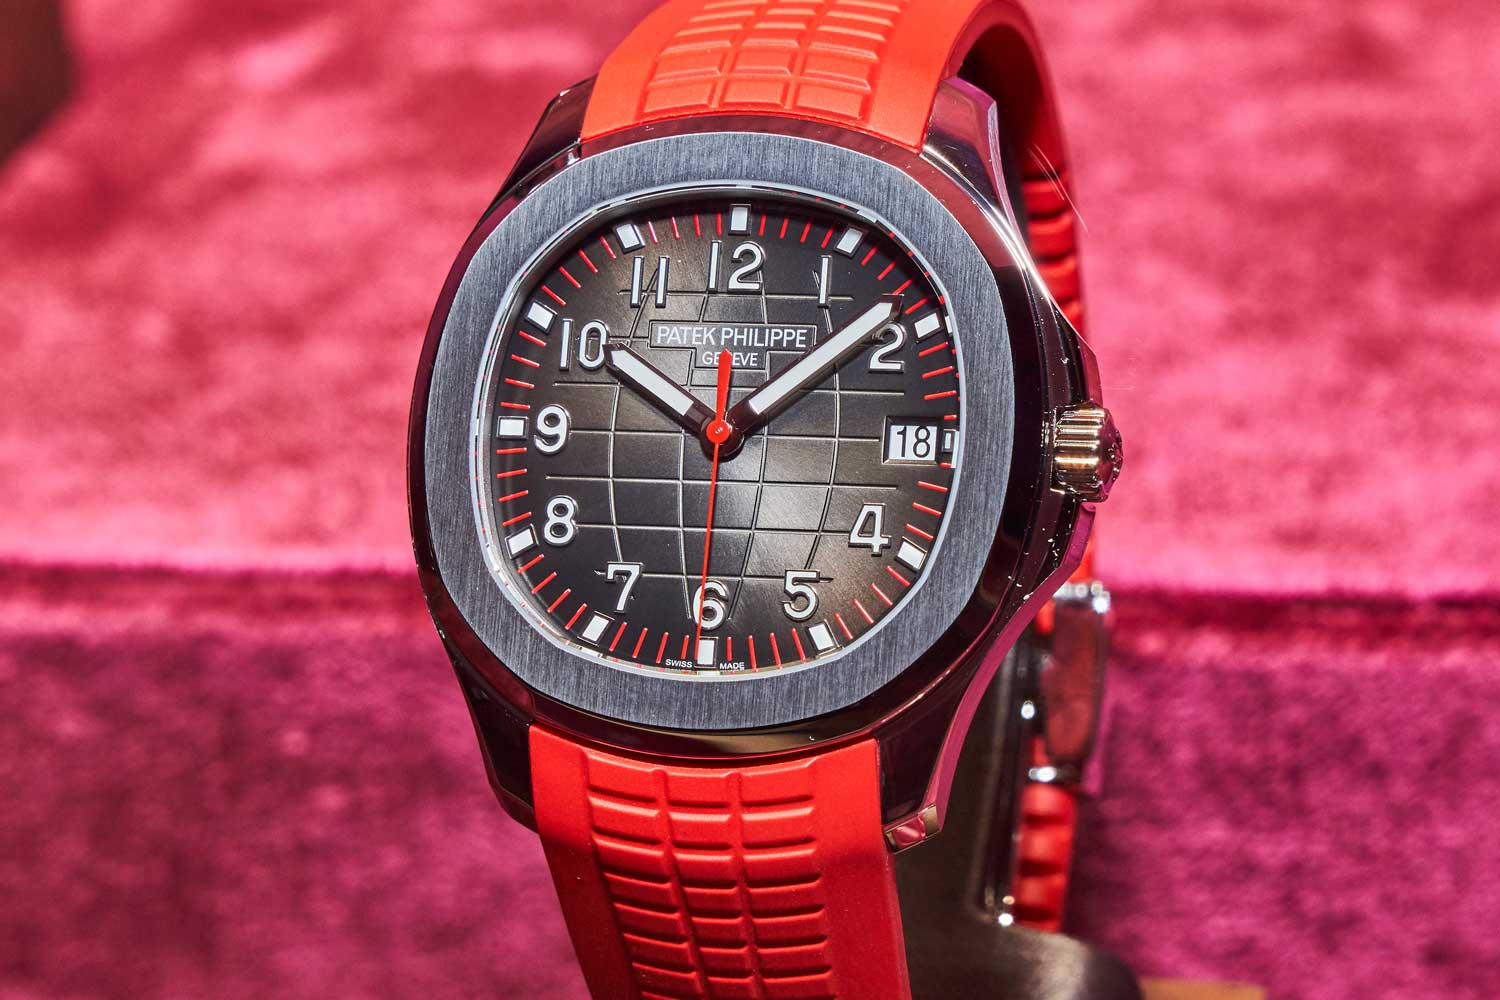 Ref. 5167 – Aquanaut Singapore 2019 Special Edition. Limited to 500 pieces.